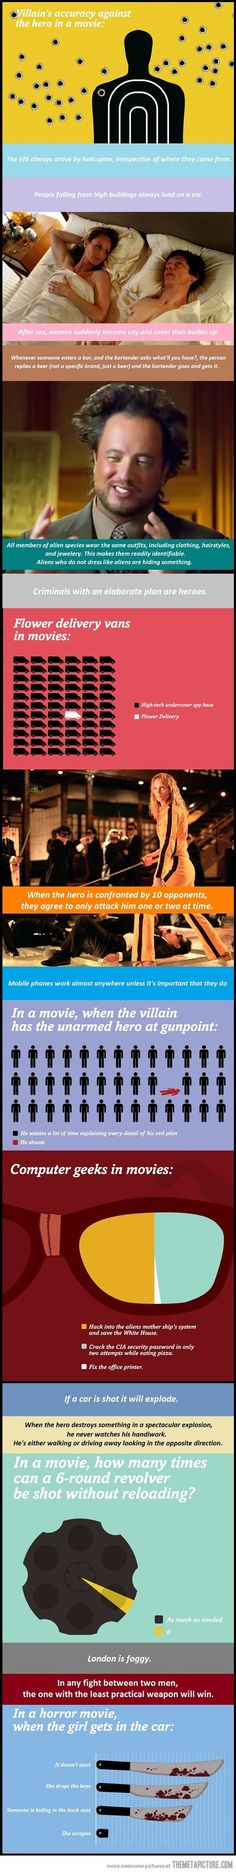 Some interesting movie facts…